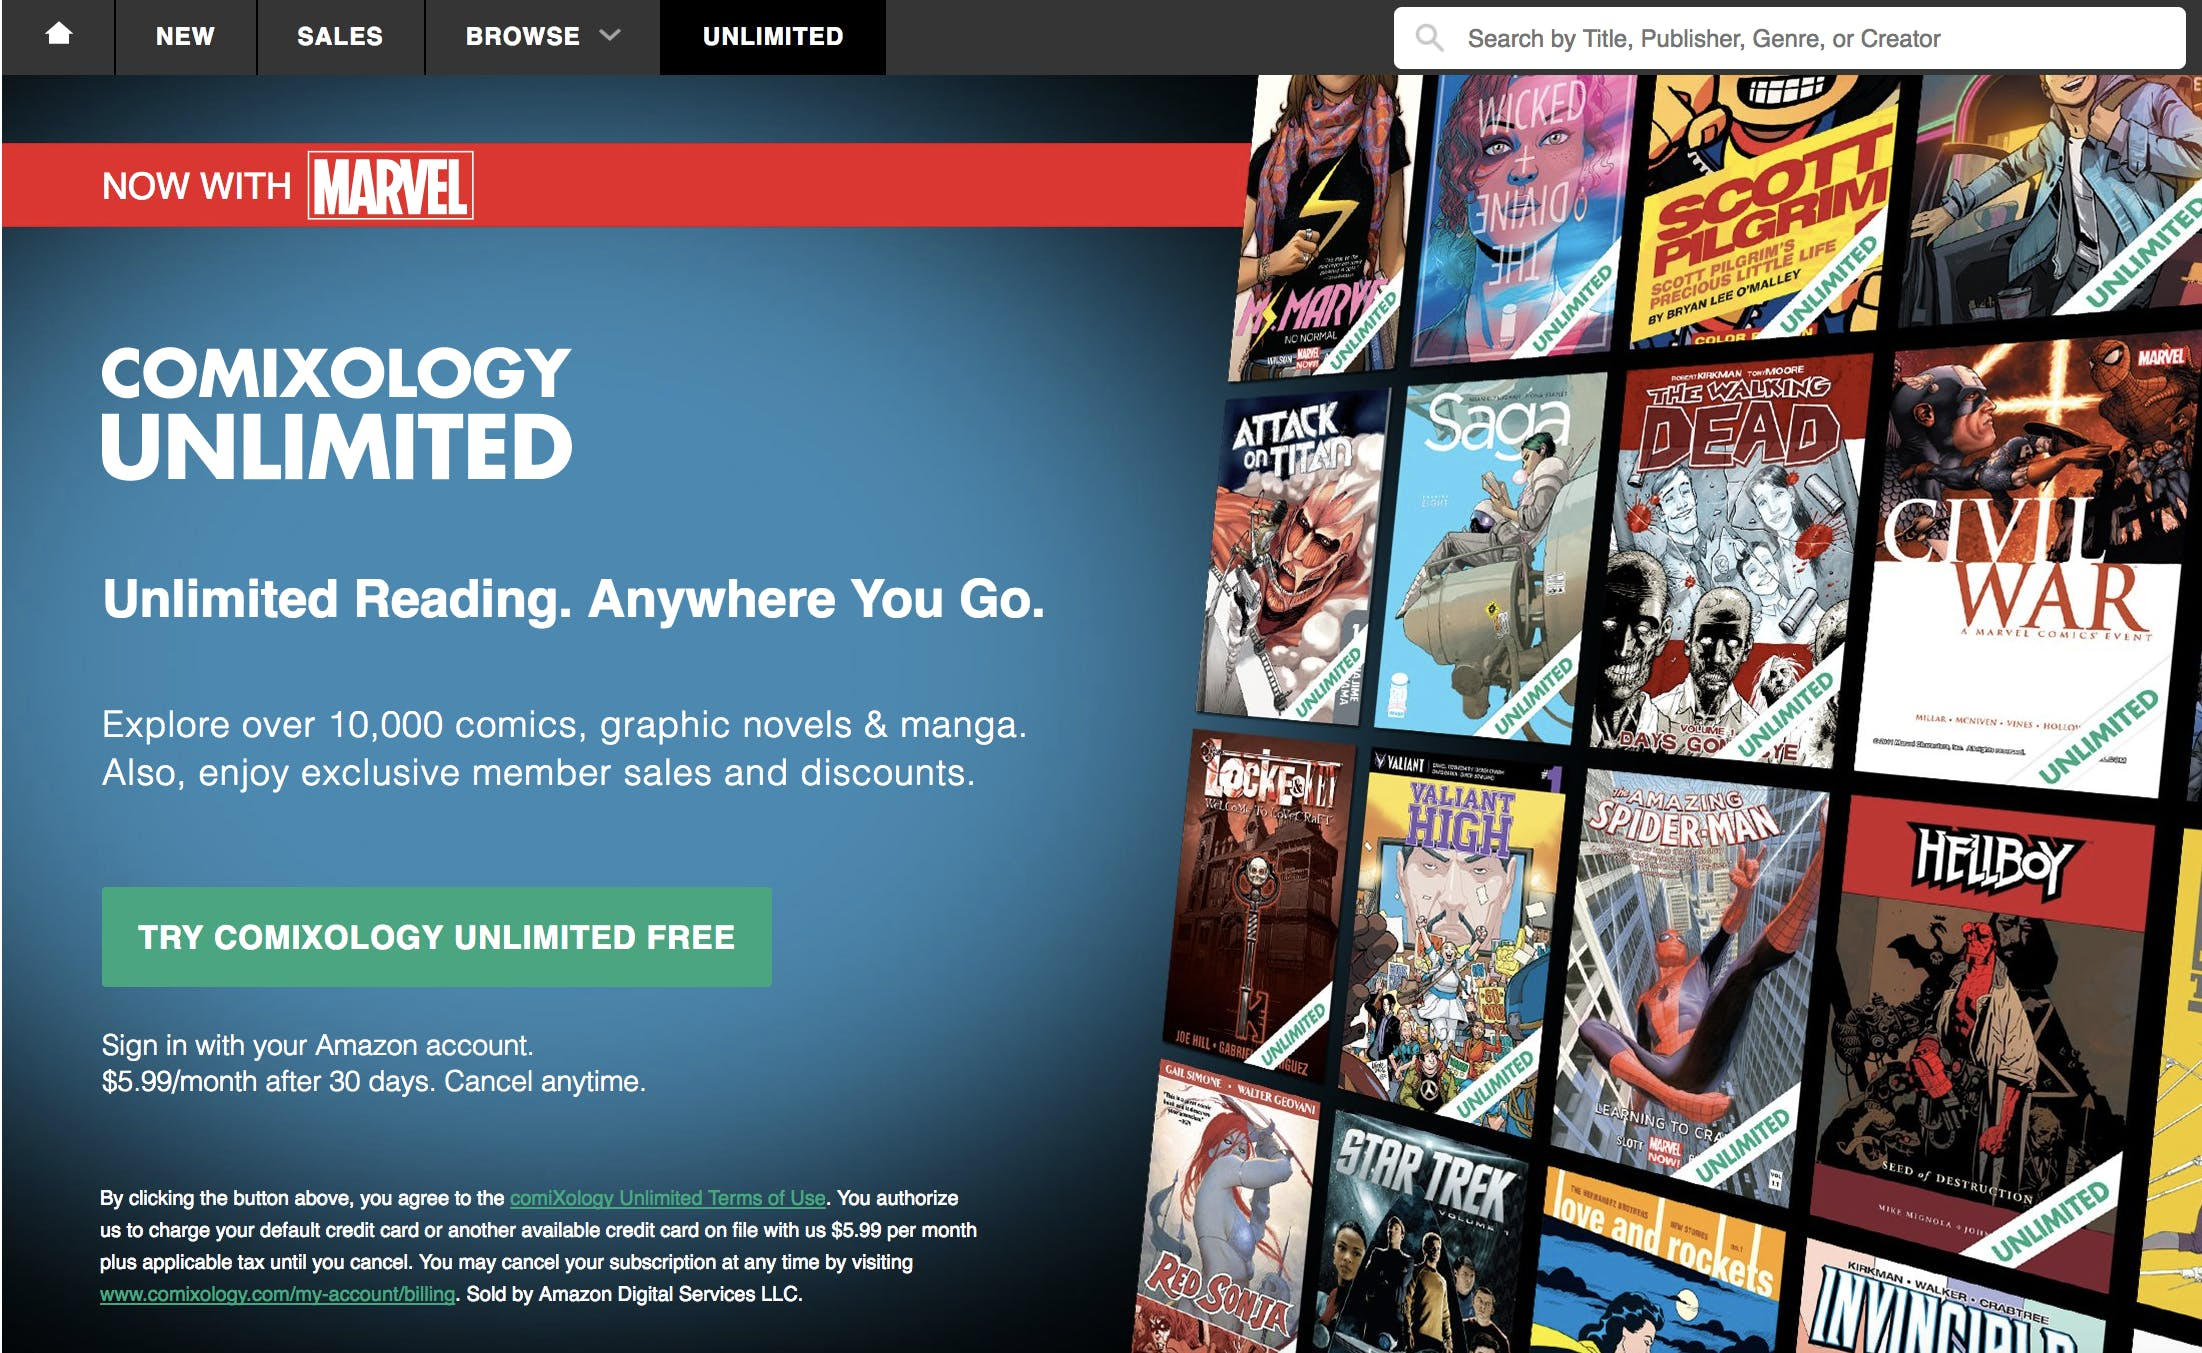 what is comixology unlimited